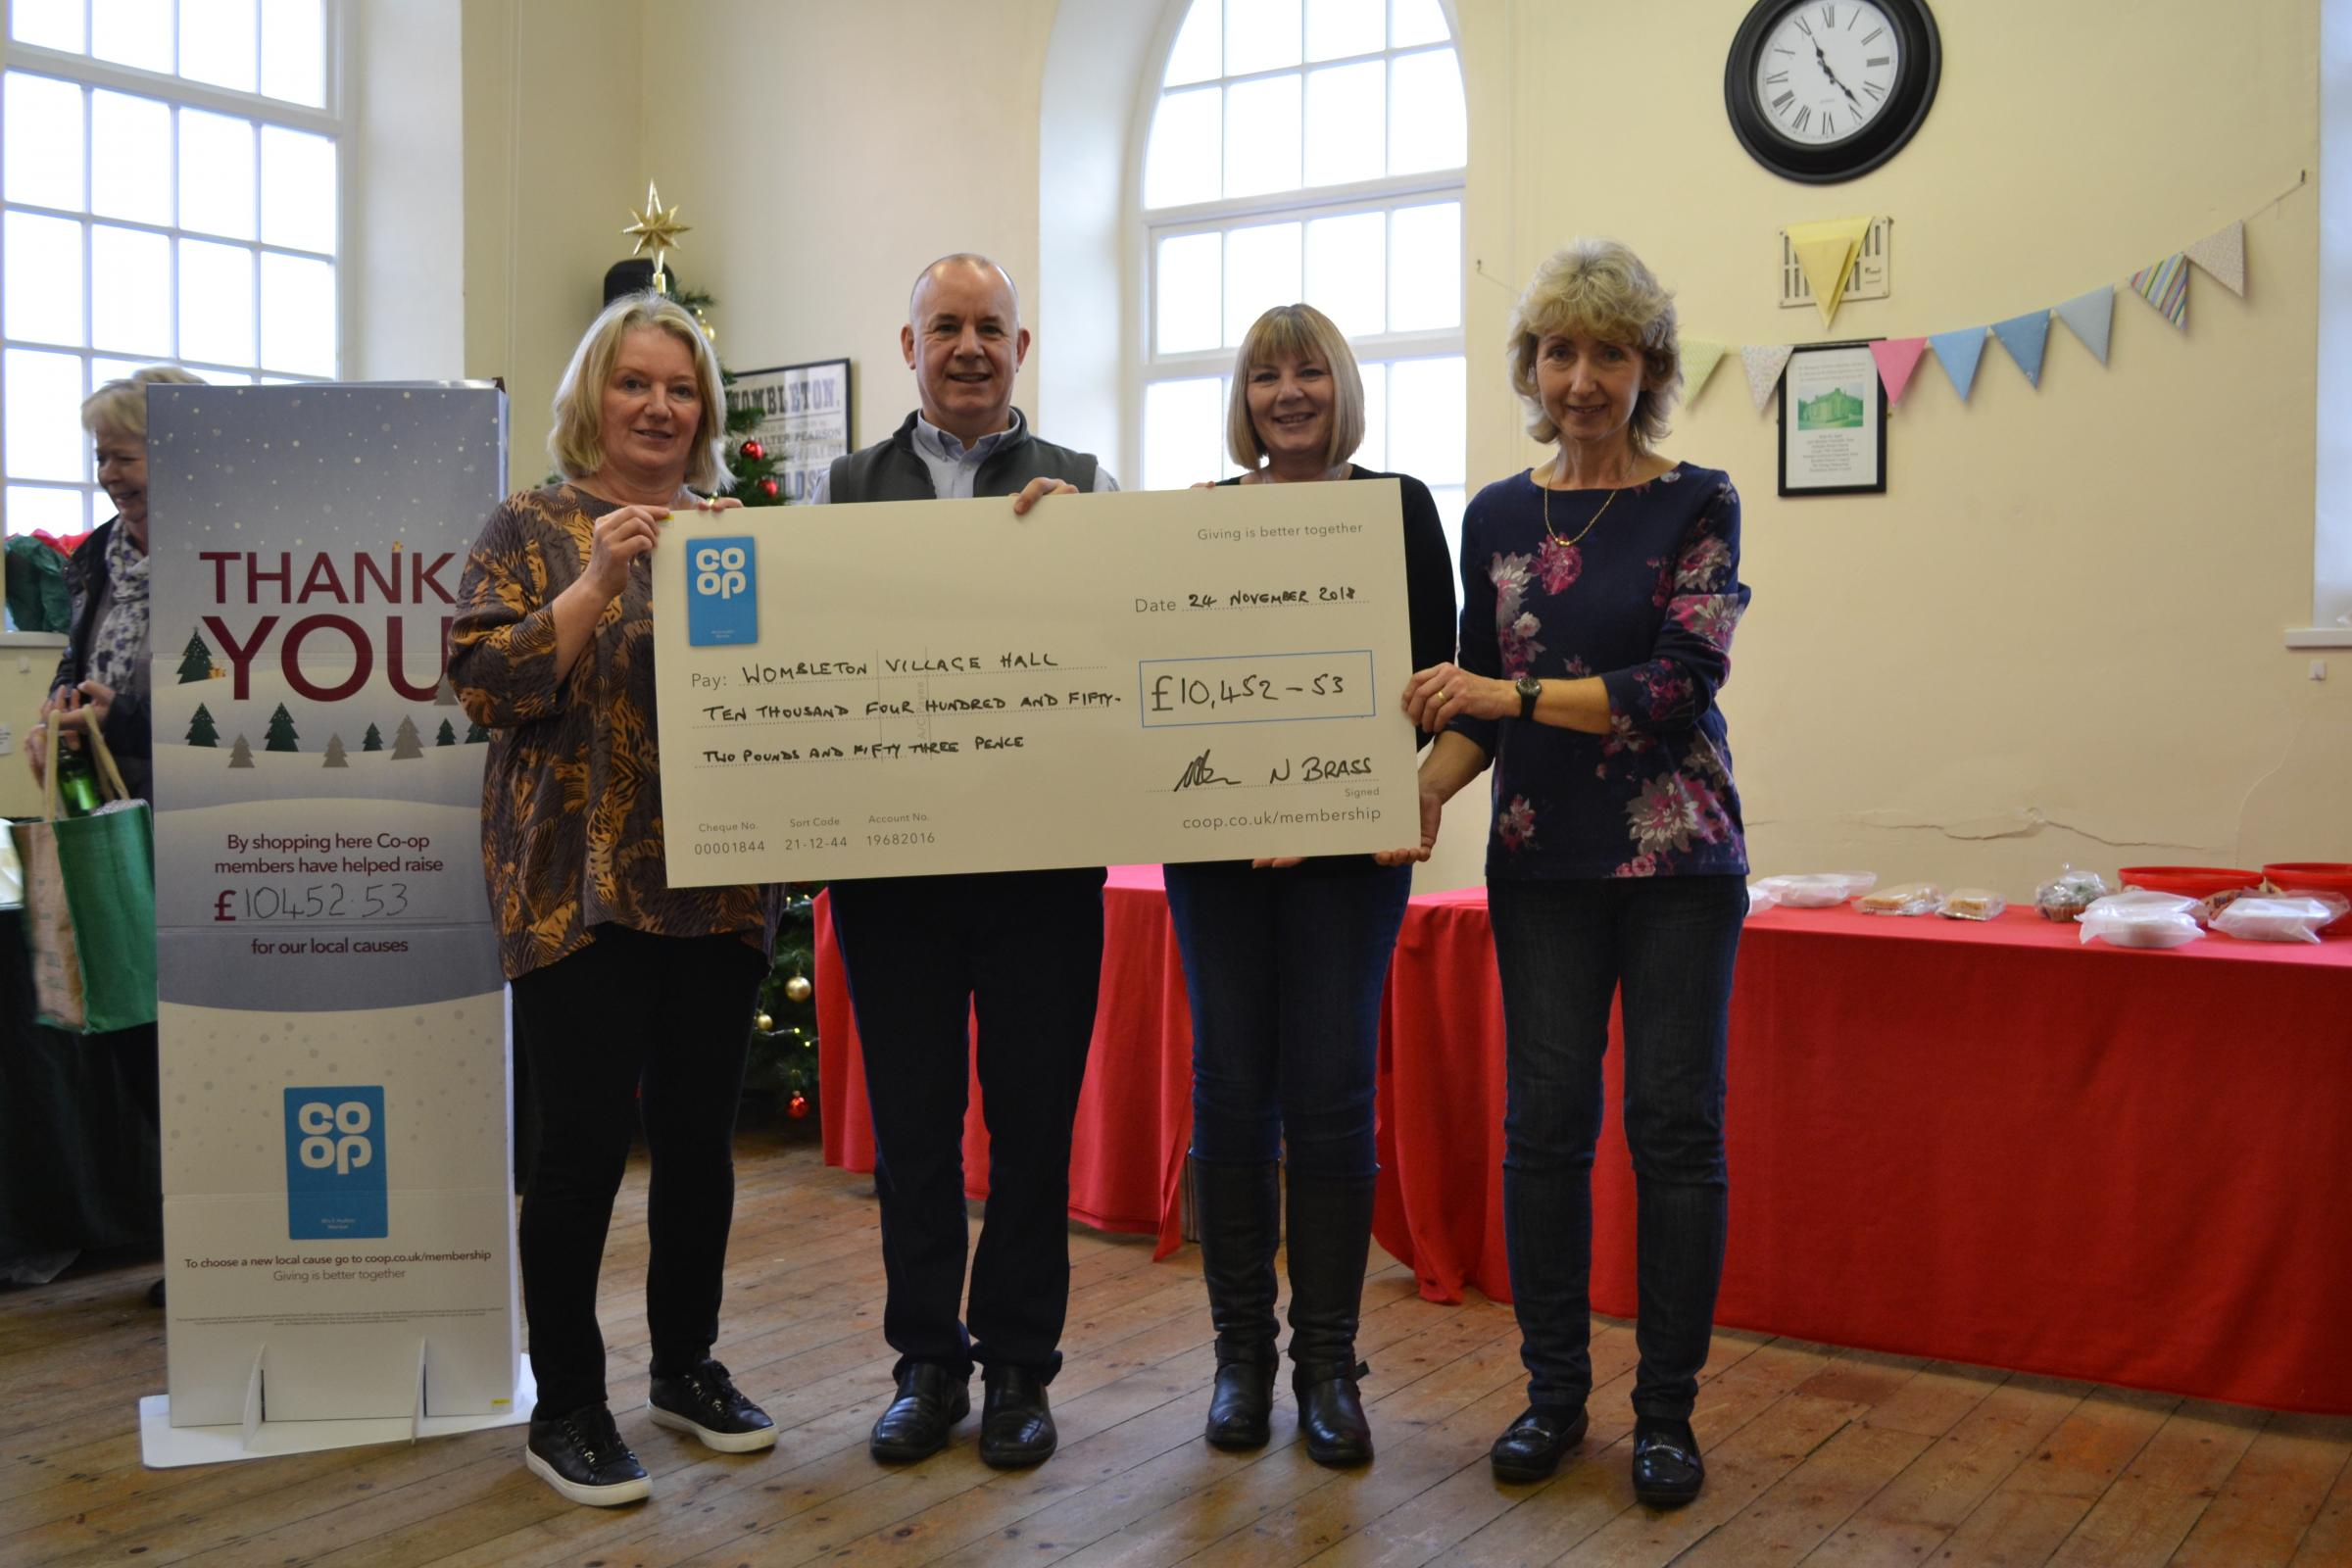 Nigel Brass, centre, manager of the Co-op in Kirkbymoorside, hands over a cheque for just over £10,000 to Louise Slater, Shirley Turnbull and Sheran Monkman, Wombleton Village Hall committee members